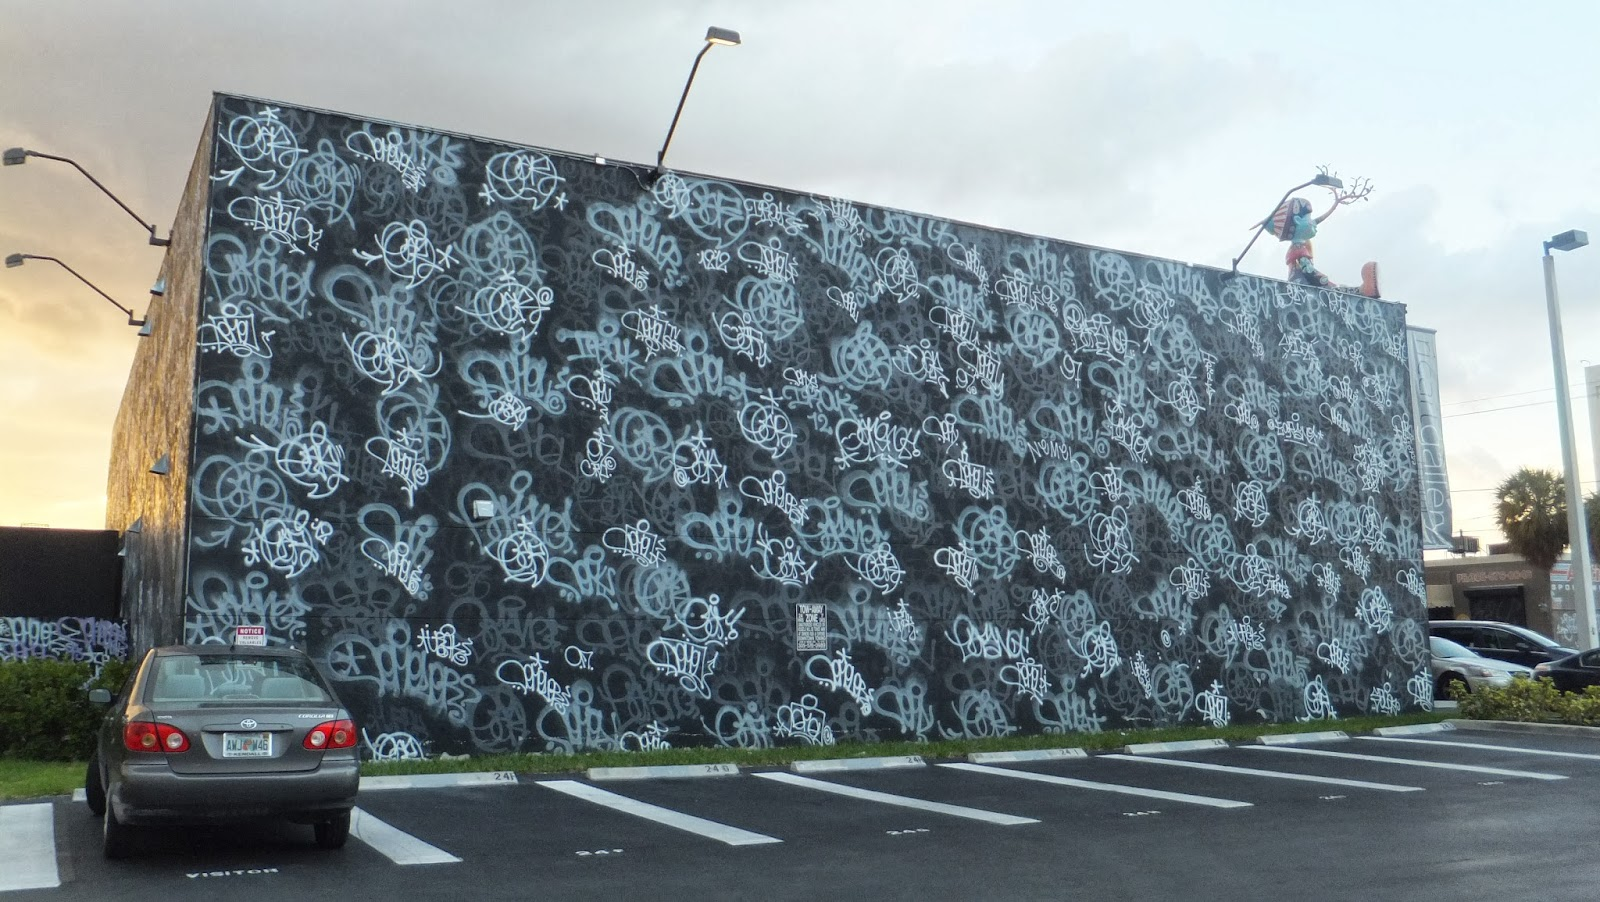 Wynwood Art District, Arte Callejero, Street Art, Miami, Florida, Elisa N, Blog de Viajes, Lifestyle, Travel